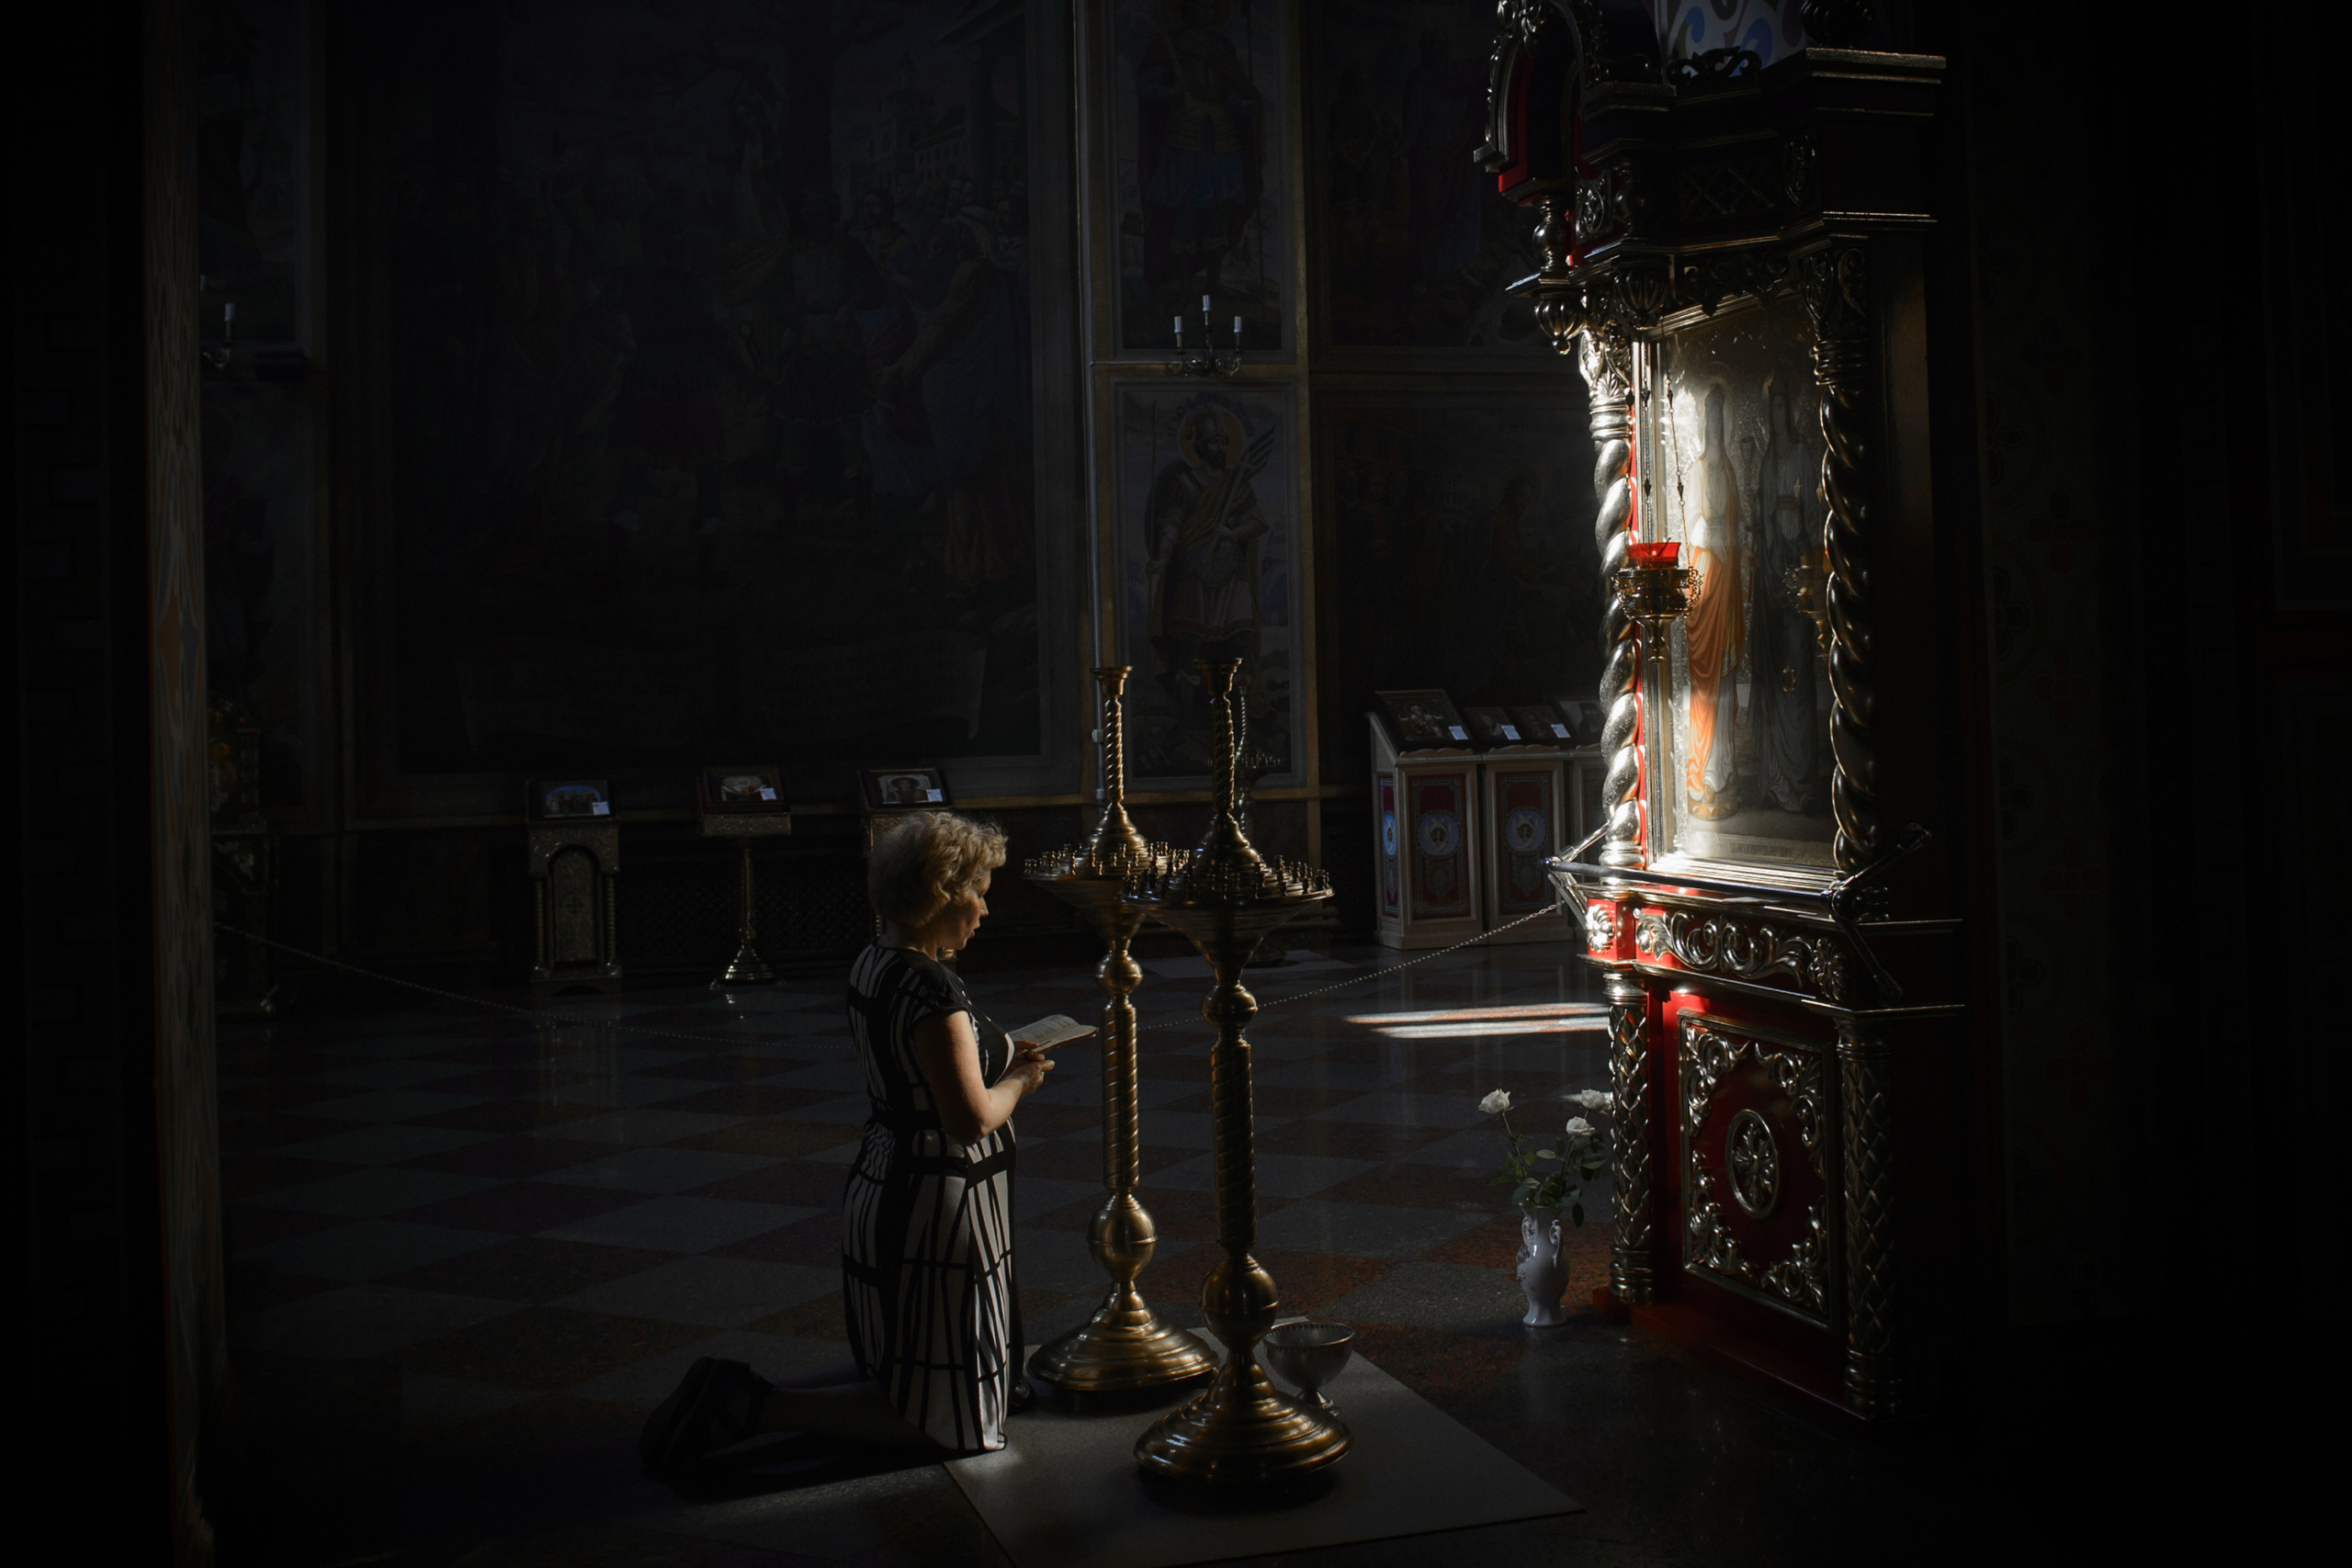 Kiev-Ukraine. a woman pray in an Orthodox church for his family who could not leave the area affected by the conflict. The fight between pro-Ukrainian troops and pro-Russian separatists is continuing in the Donbas region of eastern Ukraine despite the recent Minsk ceasefire agreements.